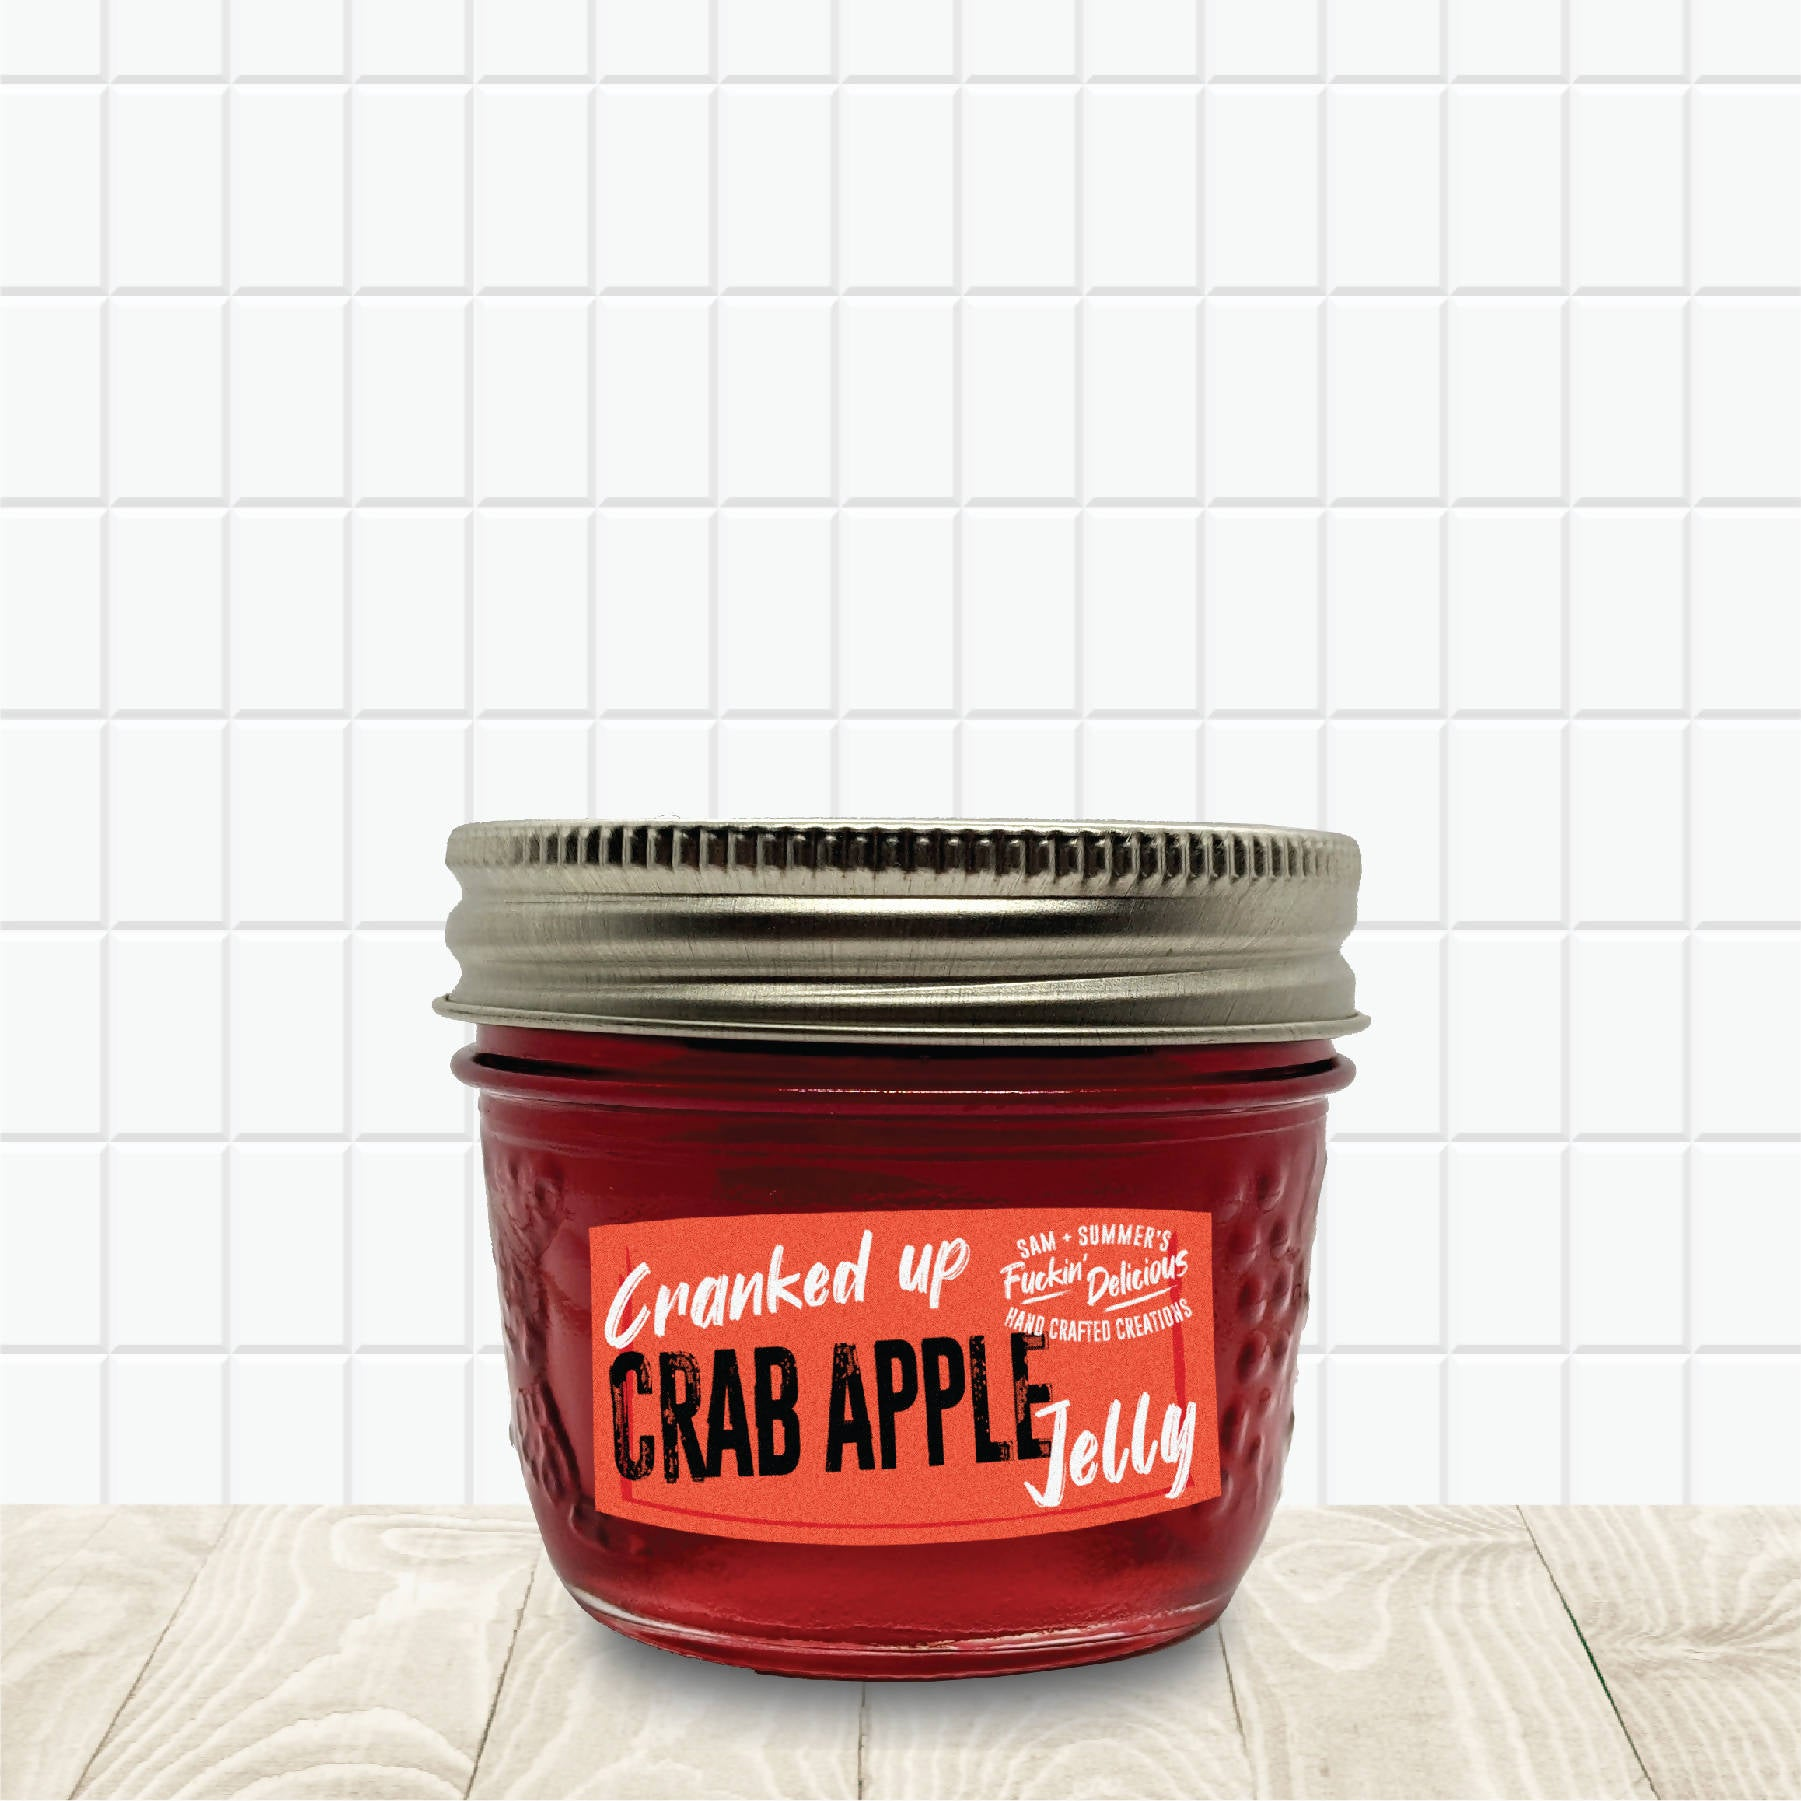 Cranked Up Crab Apple Jelly